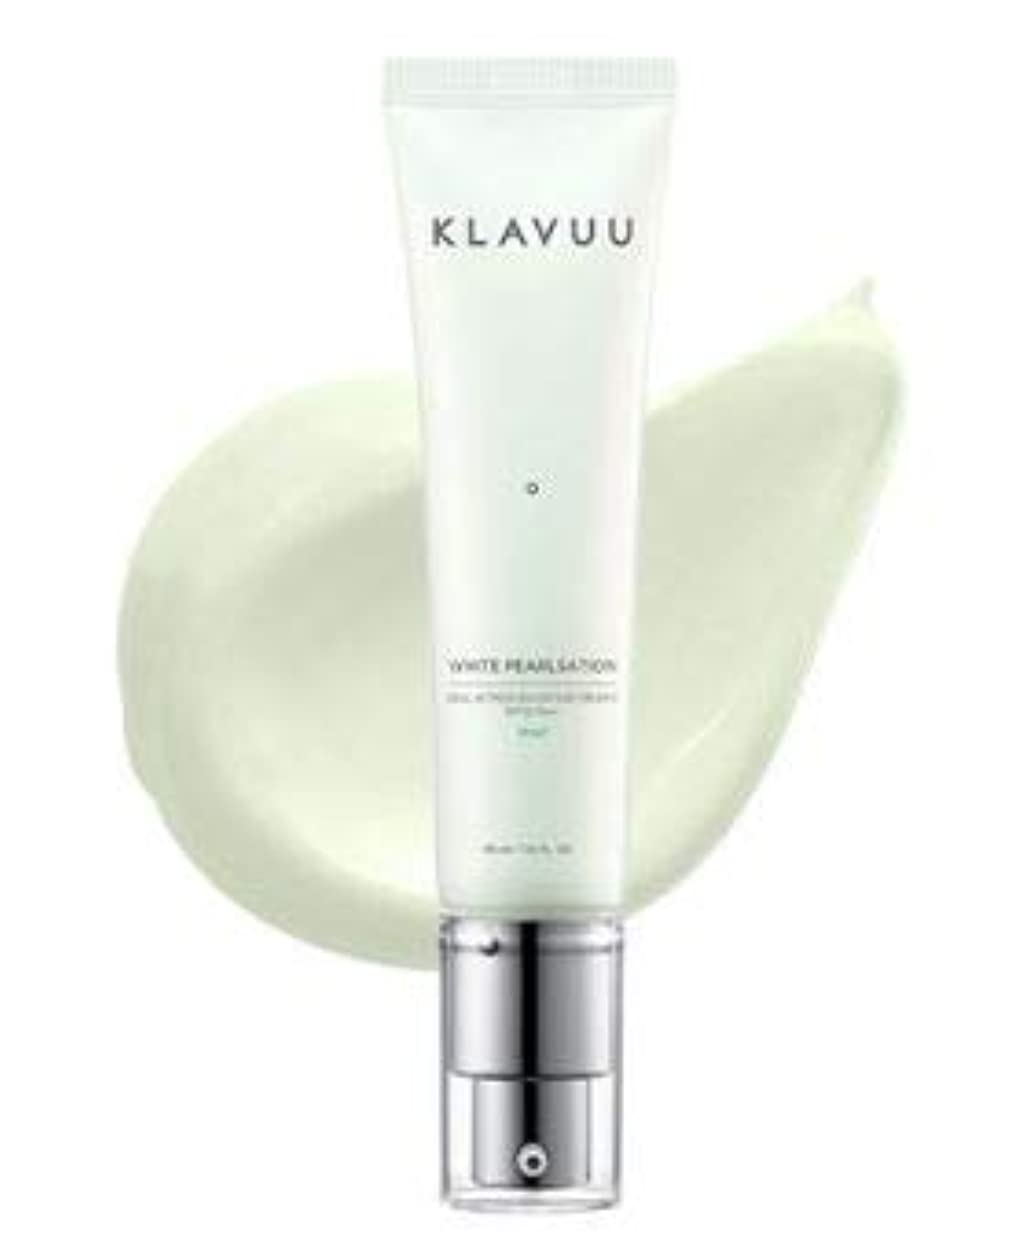 派生する礼拝意図する[KLAVUU] WHITE PEARLSATION Ideal Actress Backstage Cream SPF30 PA++女優クリーム #MINT [並行輸入品]